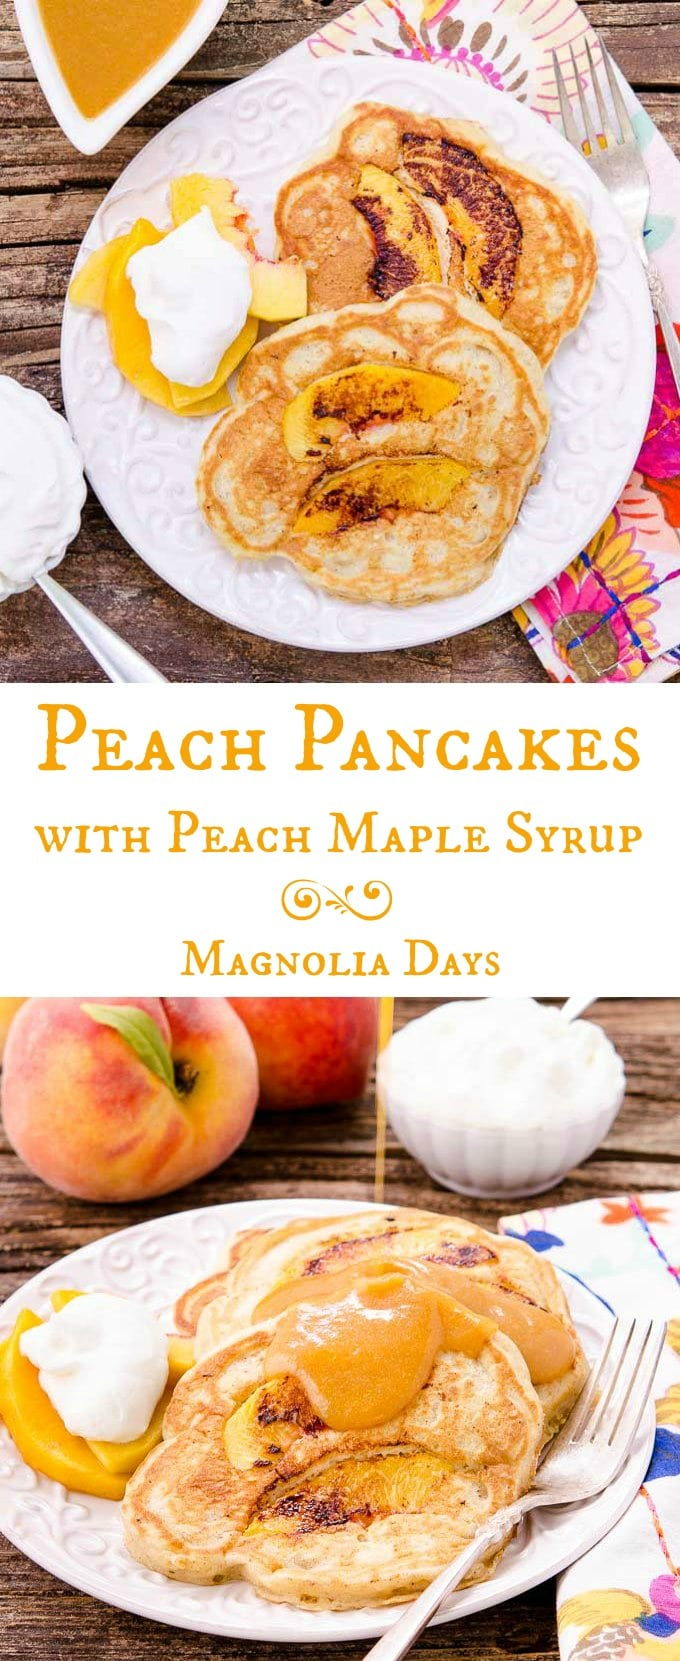 Peach Pancakes with Peach Maple Syrup are made with fresh peaches and a hint of spice. It's a delightful breakfast with summer fruit inside and out.